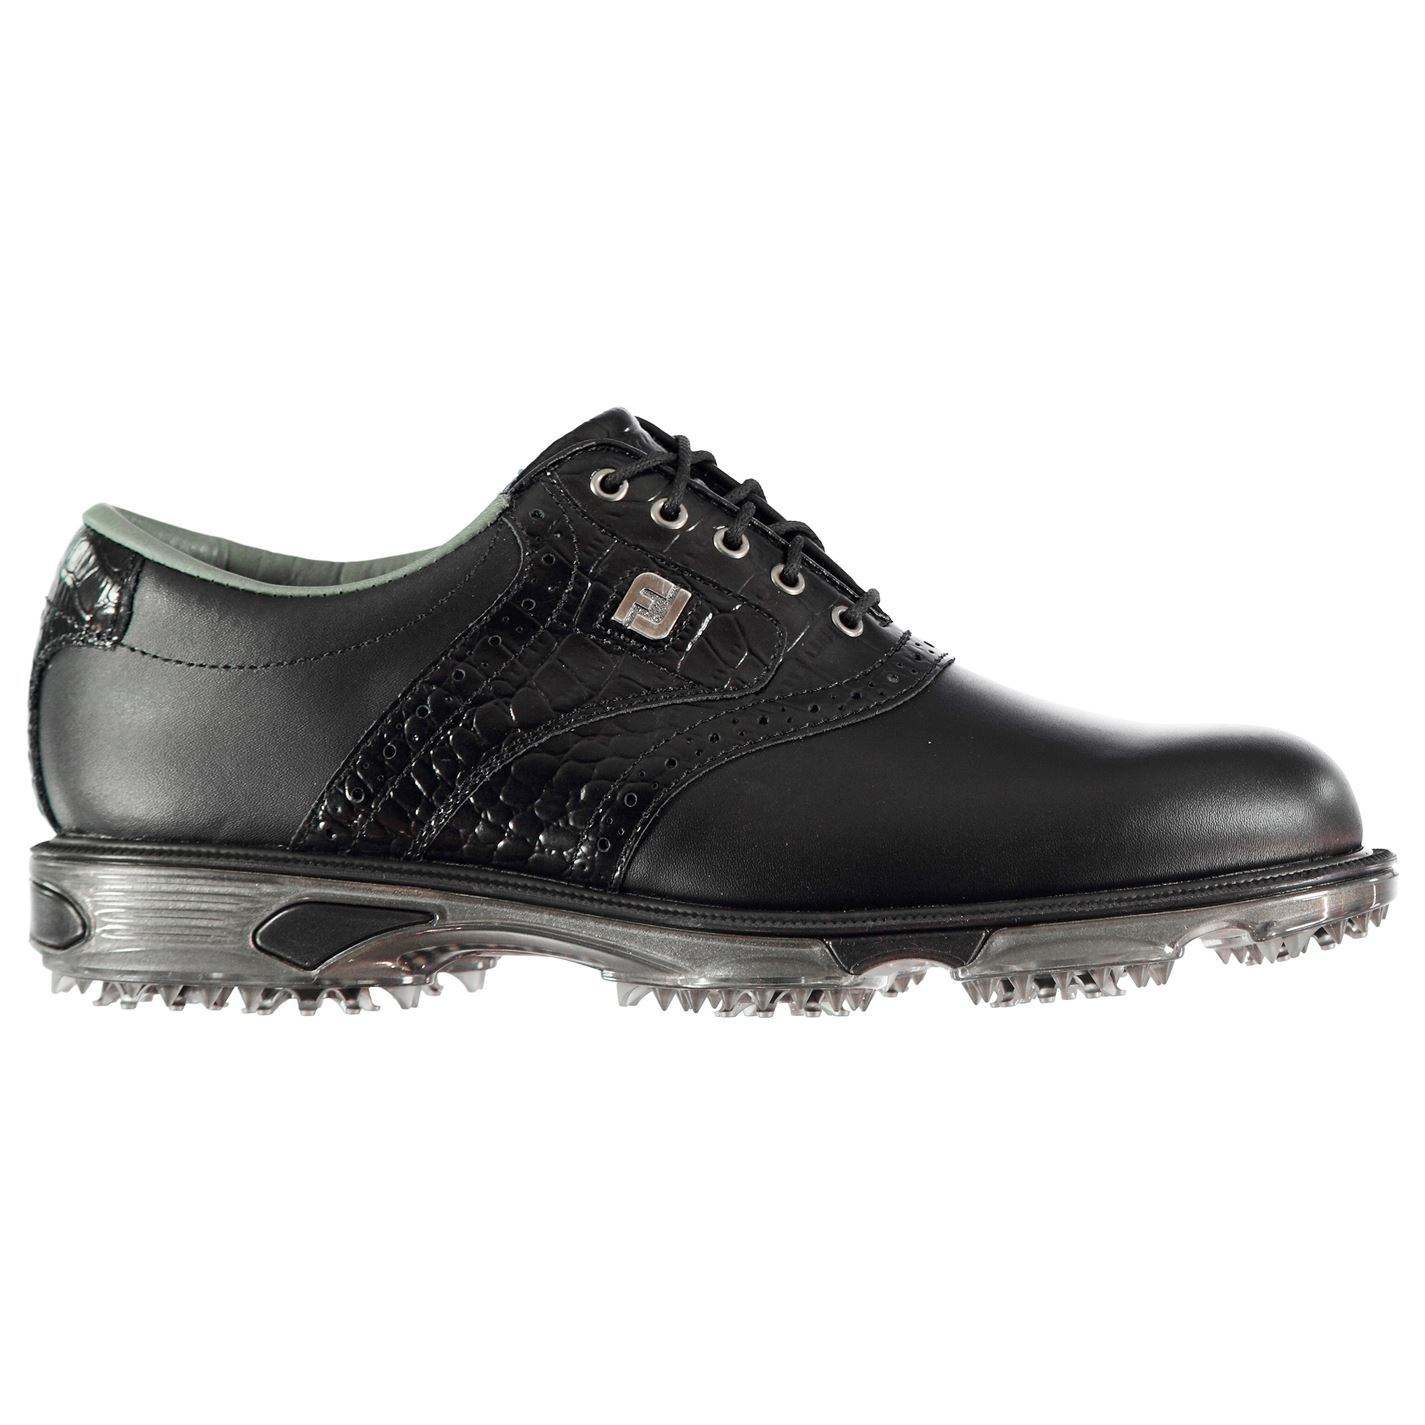 Footjoy-DryJoys-Tour-Golf-Shoes-Mens-Spikes-Footwear thumbnail 3